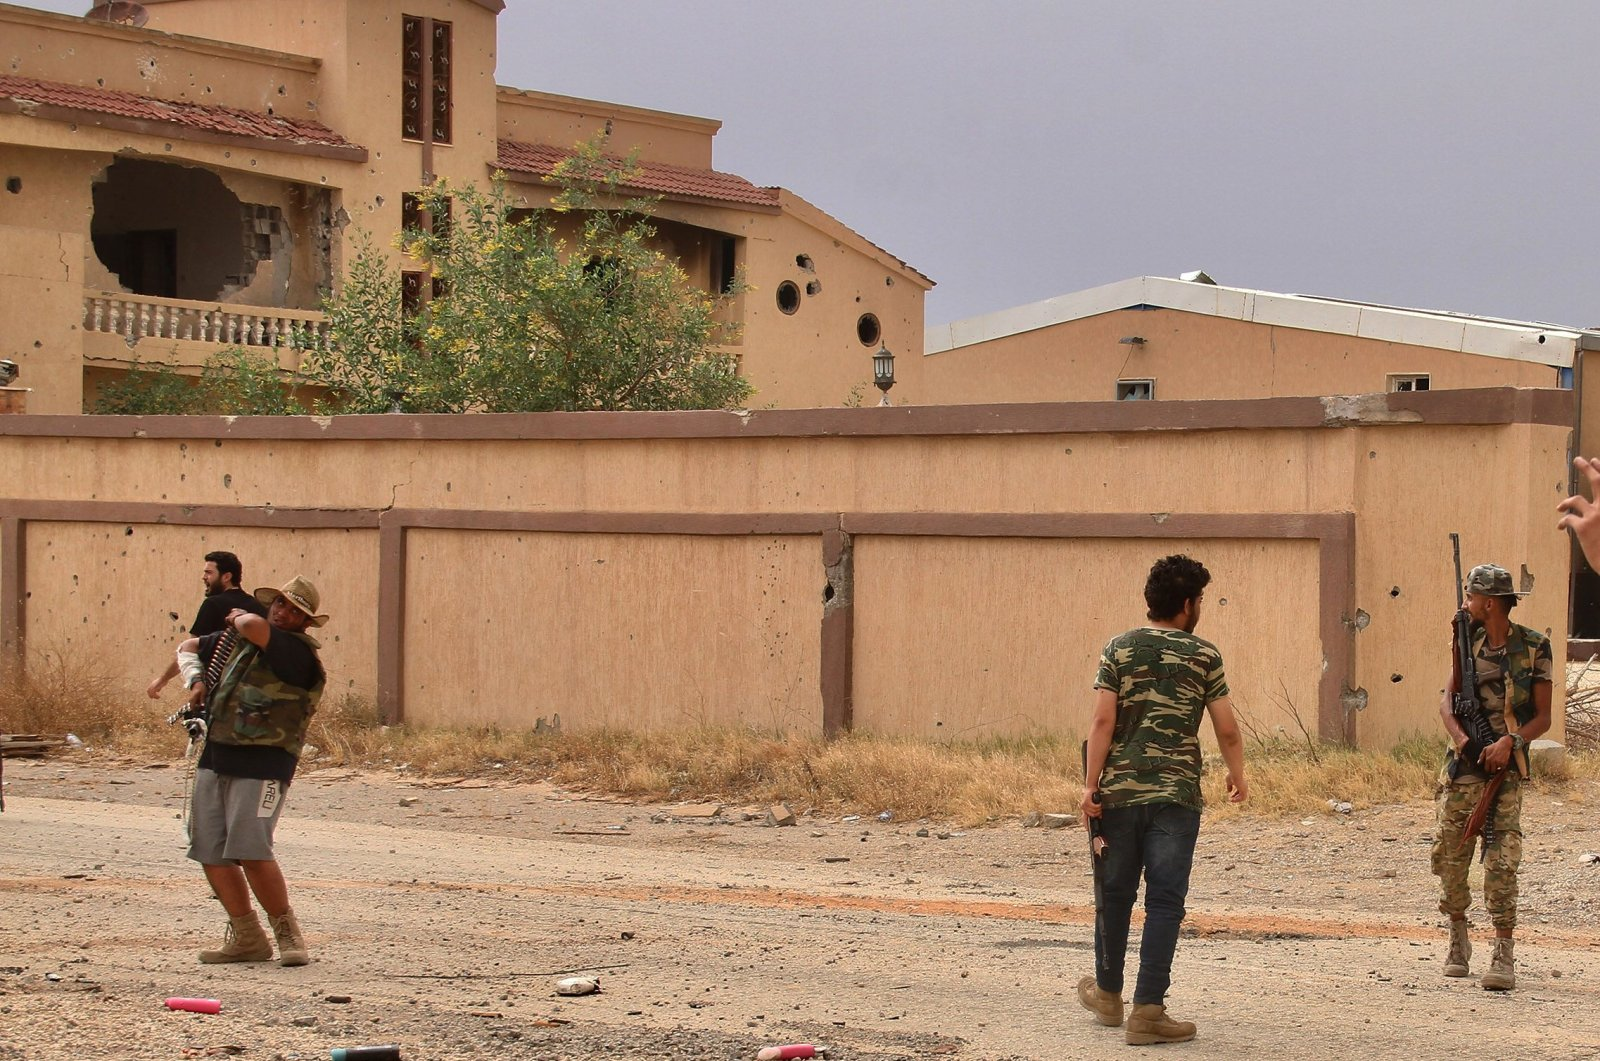 Fighters loyal to the internationally recognised Libyan Government of National Accord (GNA) are pictured during clashes with forces loyal to Khalifa Haftar in an area south of the Libyan capital Tripoli on June 1, 2020. (AFP Photo)